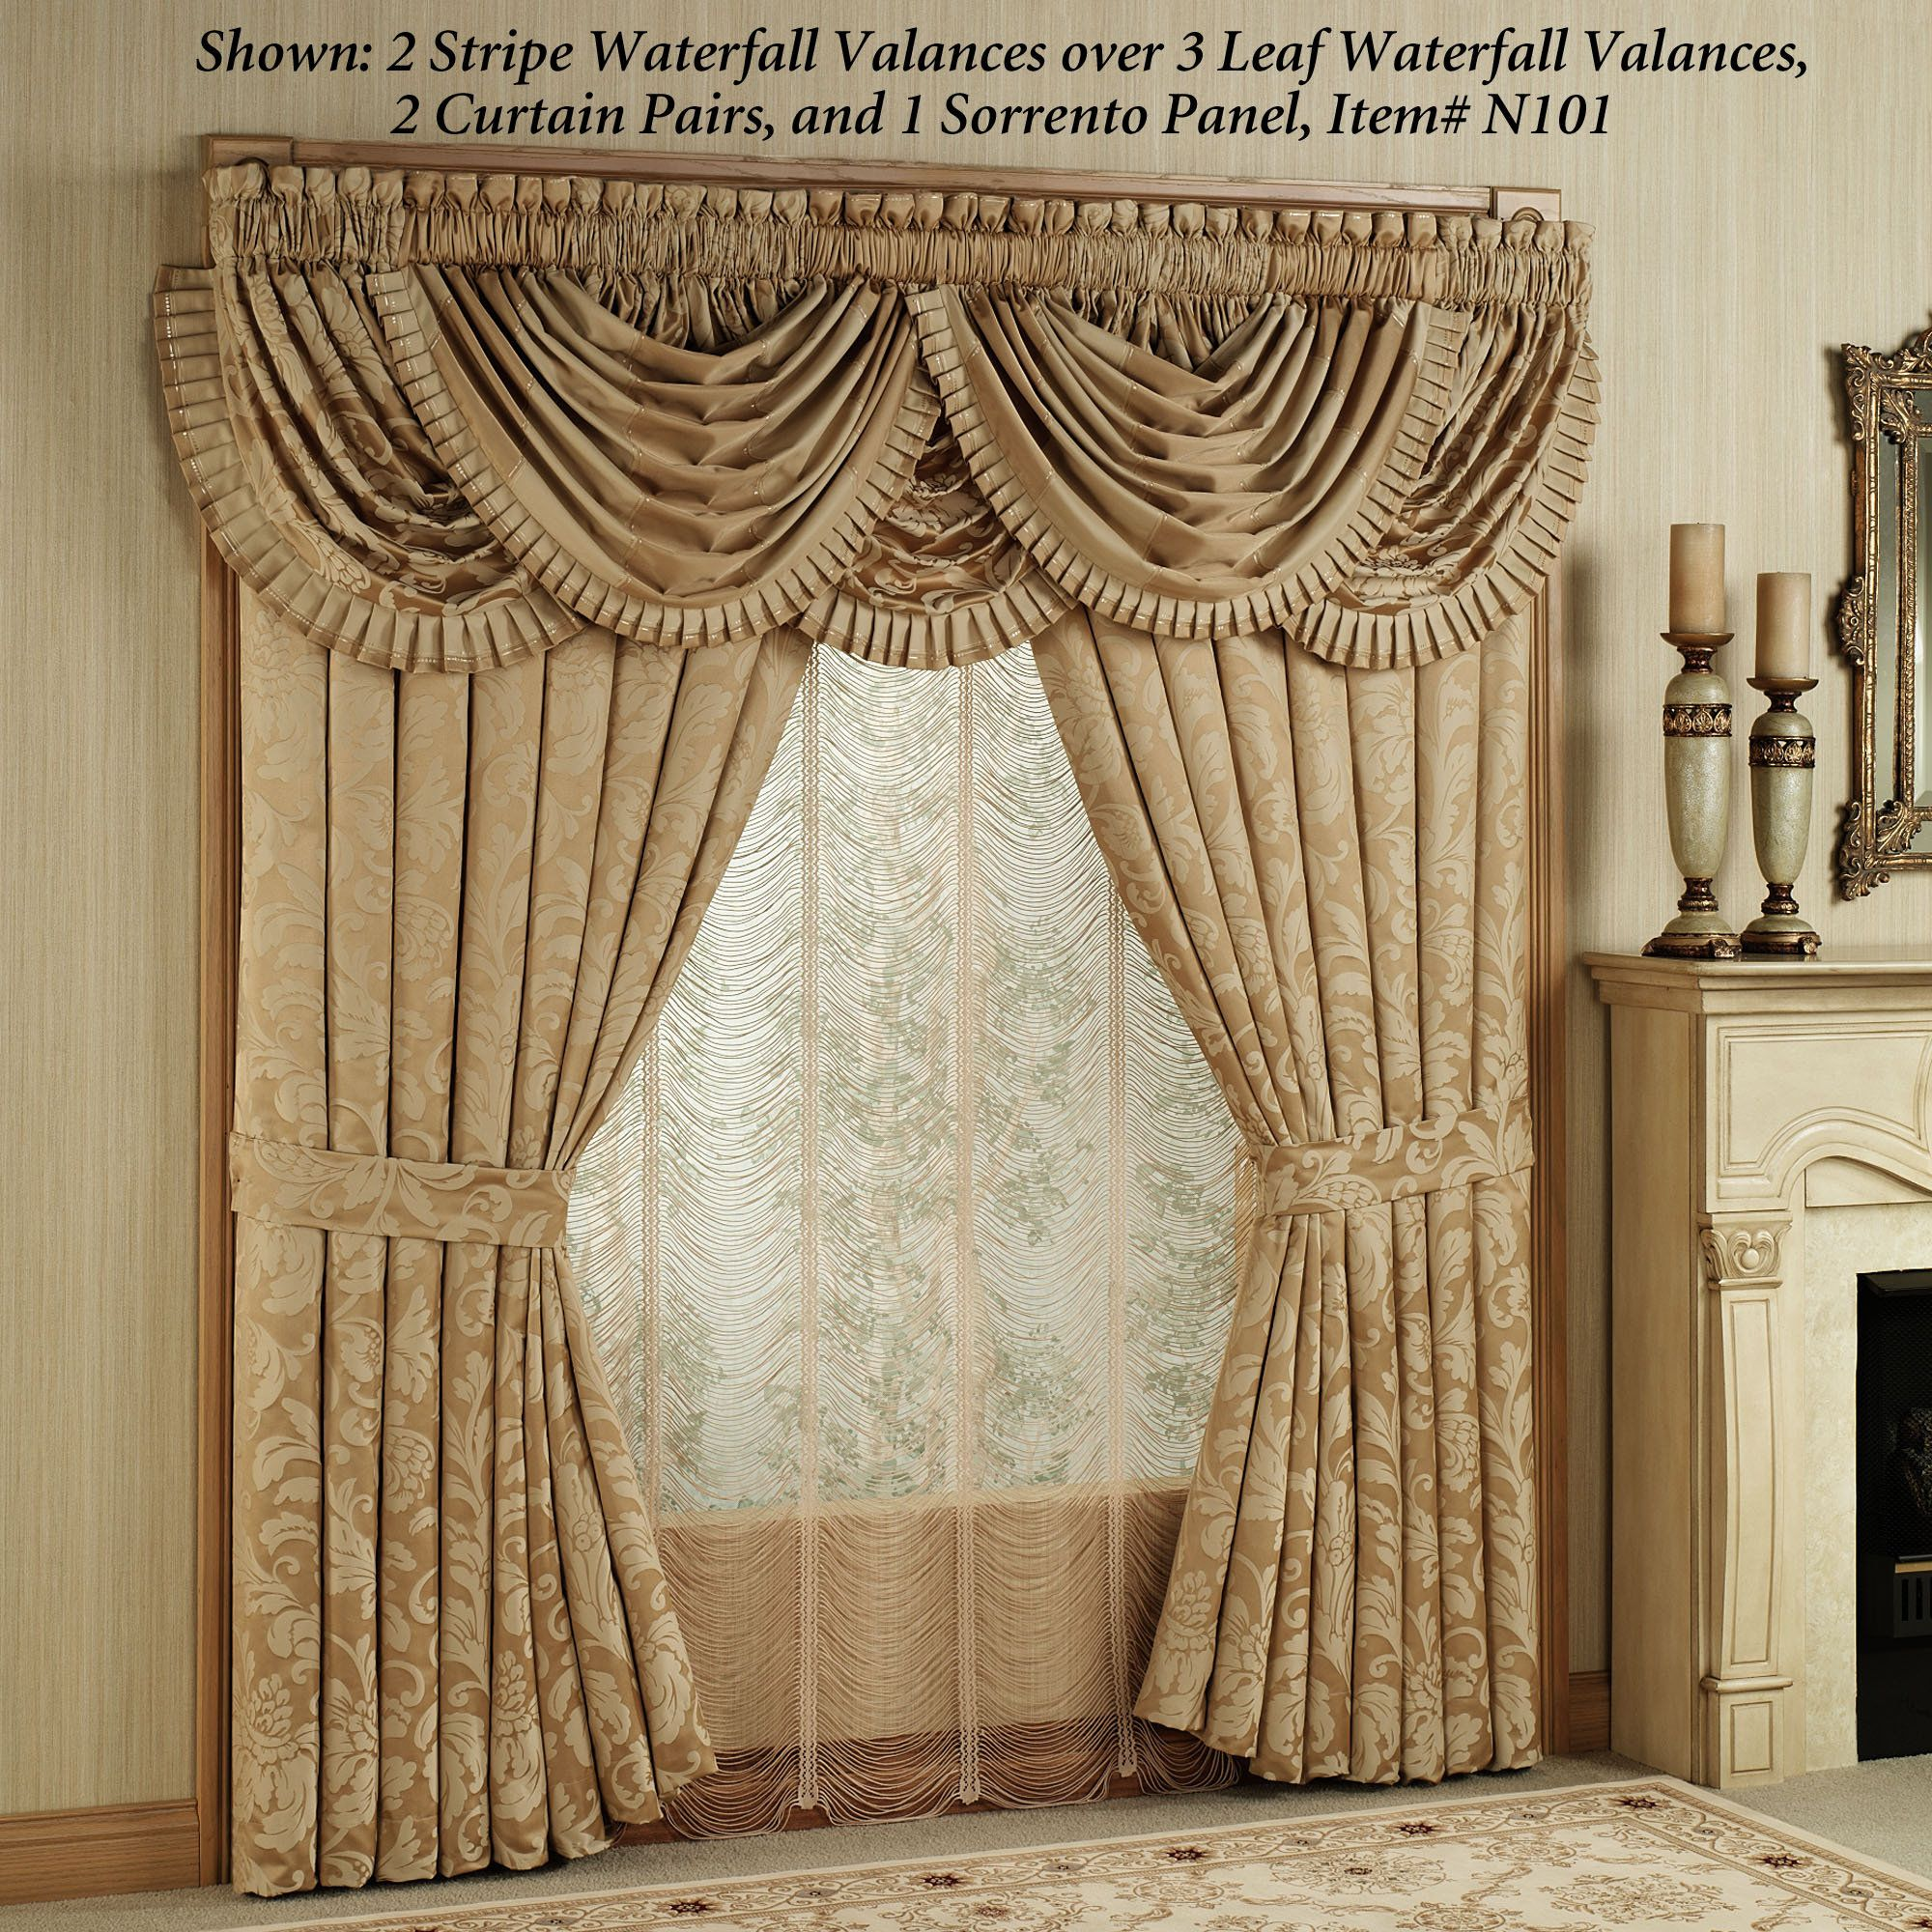 crest with curtains and bracket wine g bottle scarf valances valance drapes swag related drapery leaf home sconce